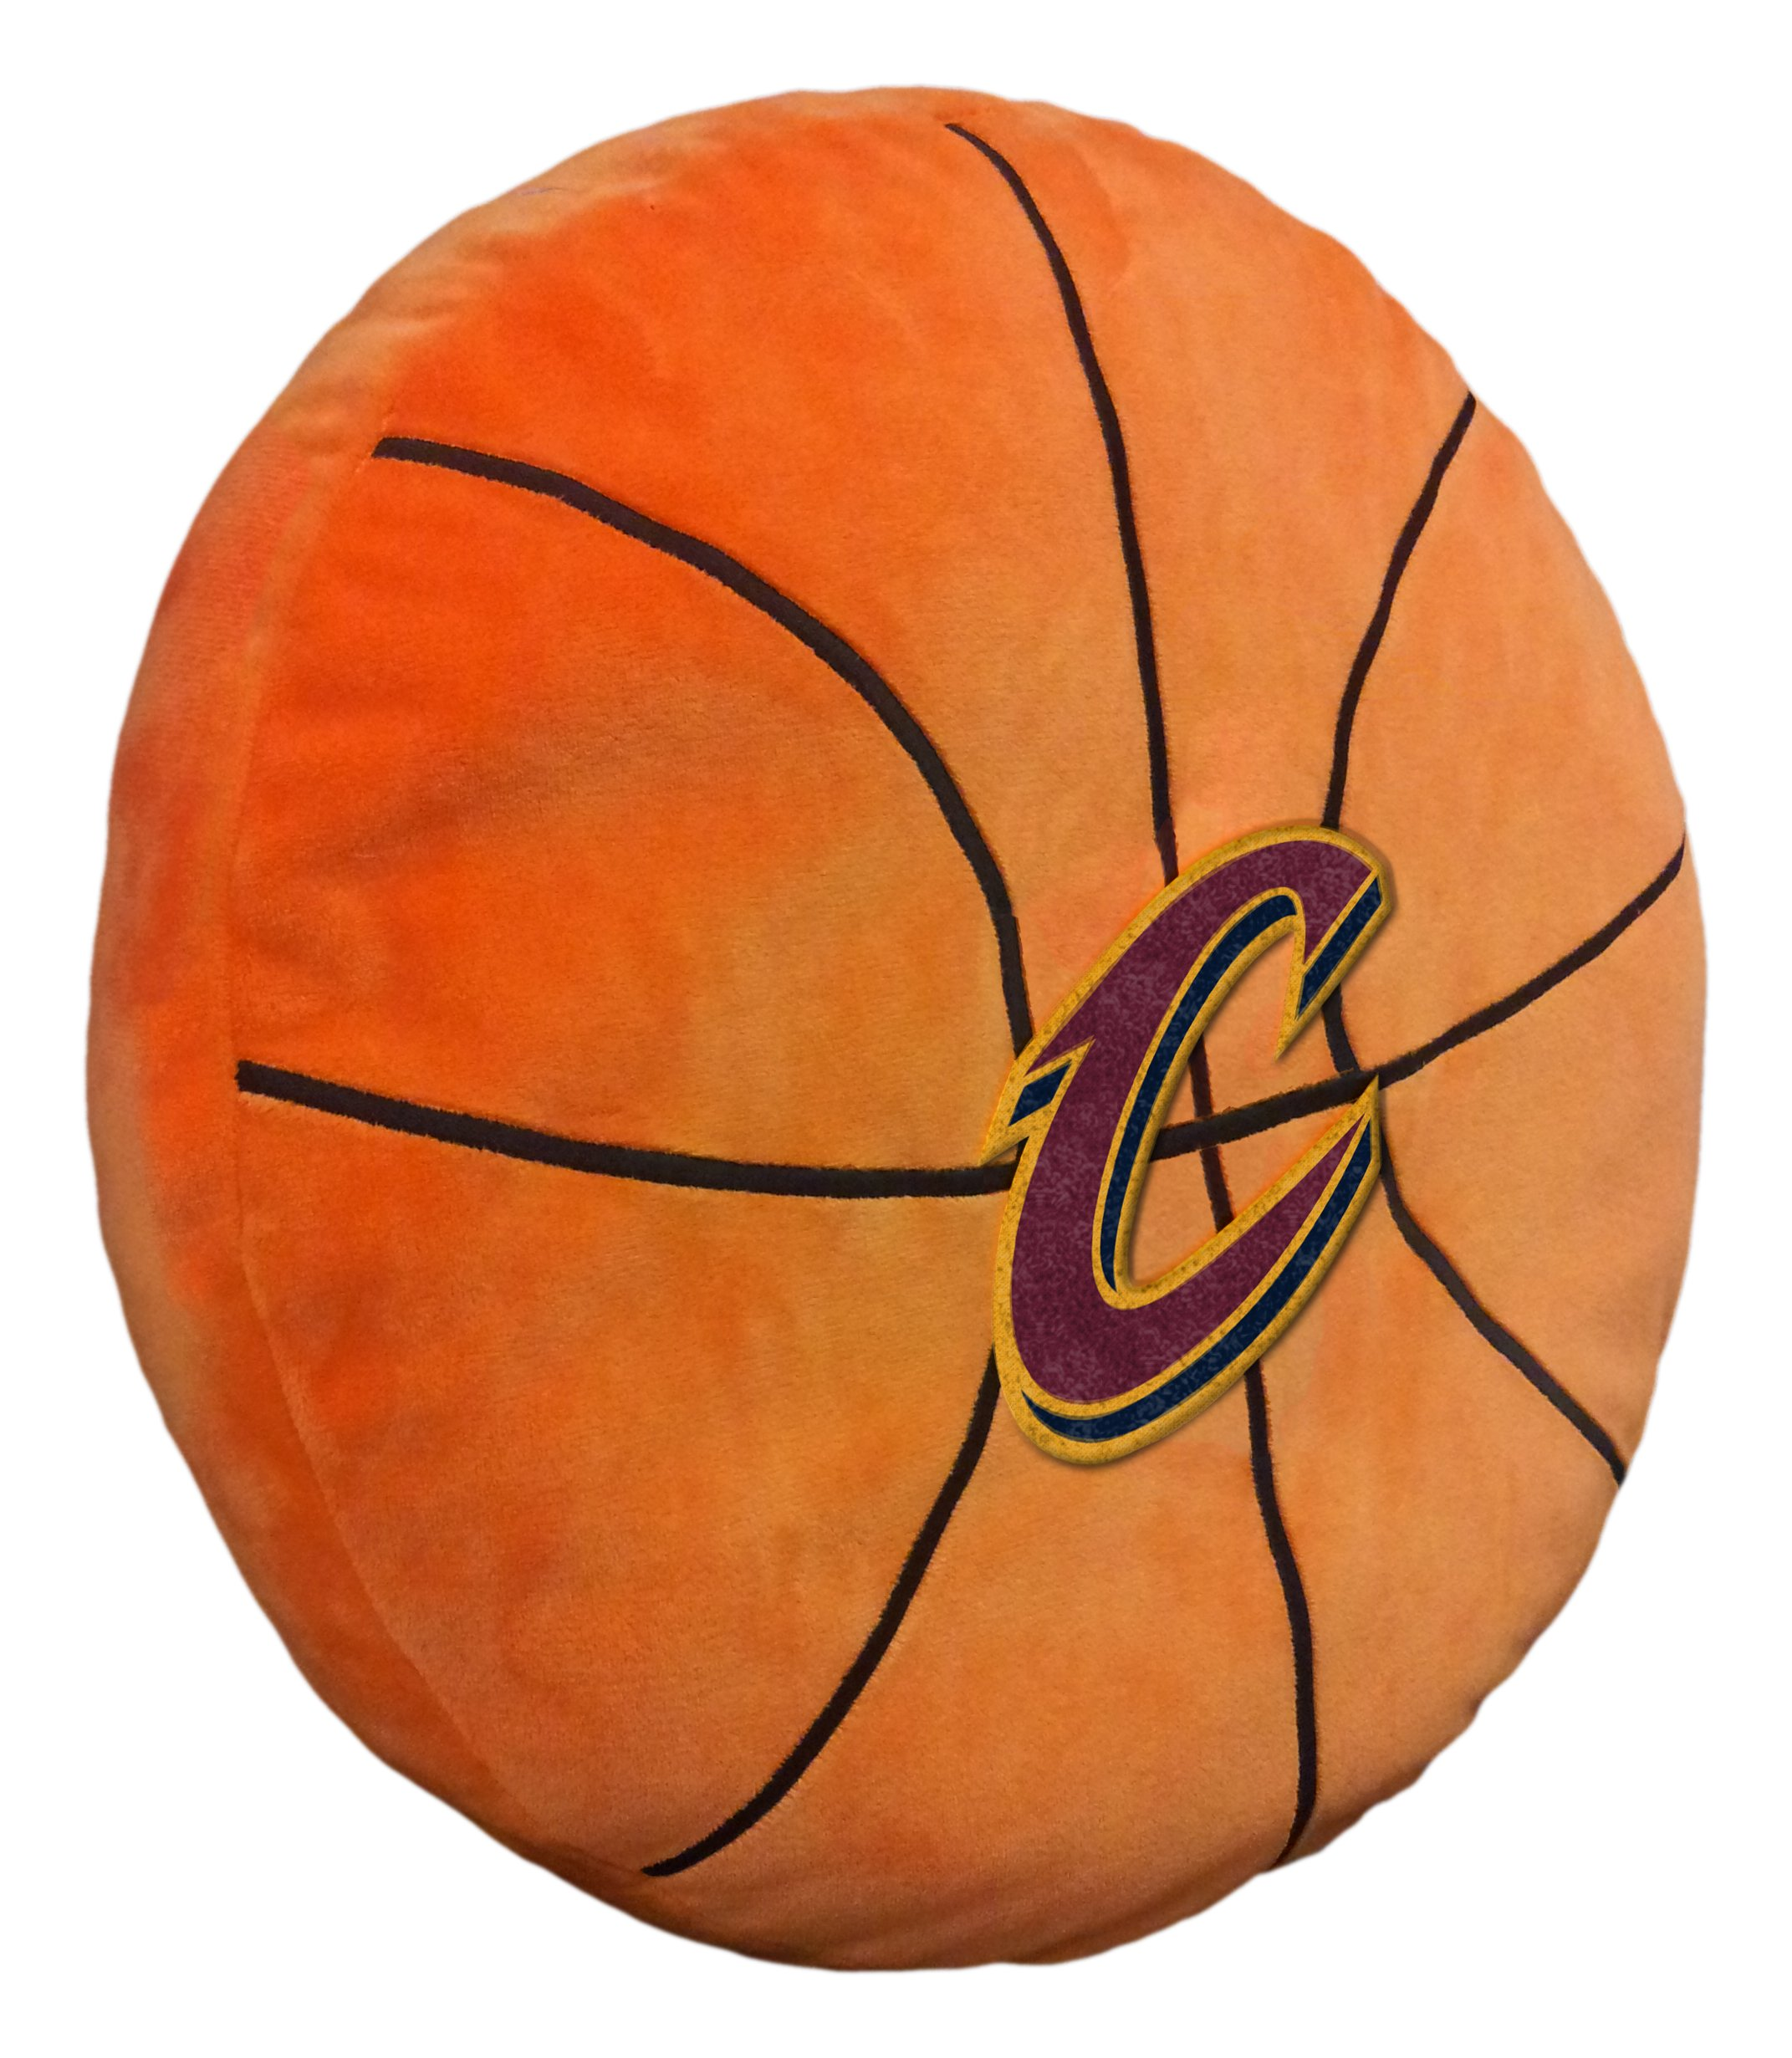 Officially Licensed NBA Cleveland Cavaliers ''3D'' Basketball Shaped Pillow, Orange, 15'' x 15'' x 2'' by The Northwest Company